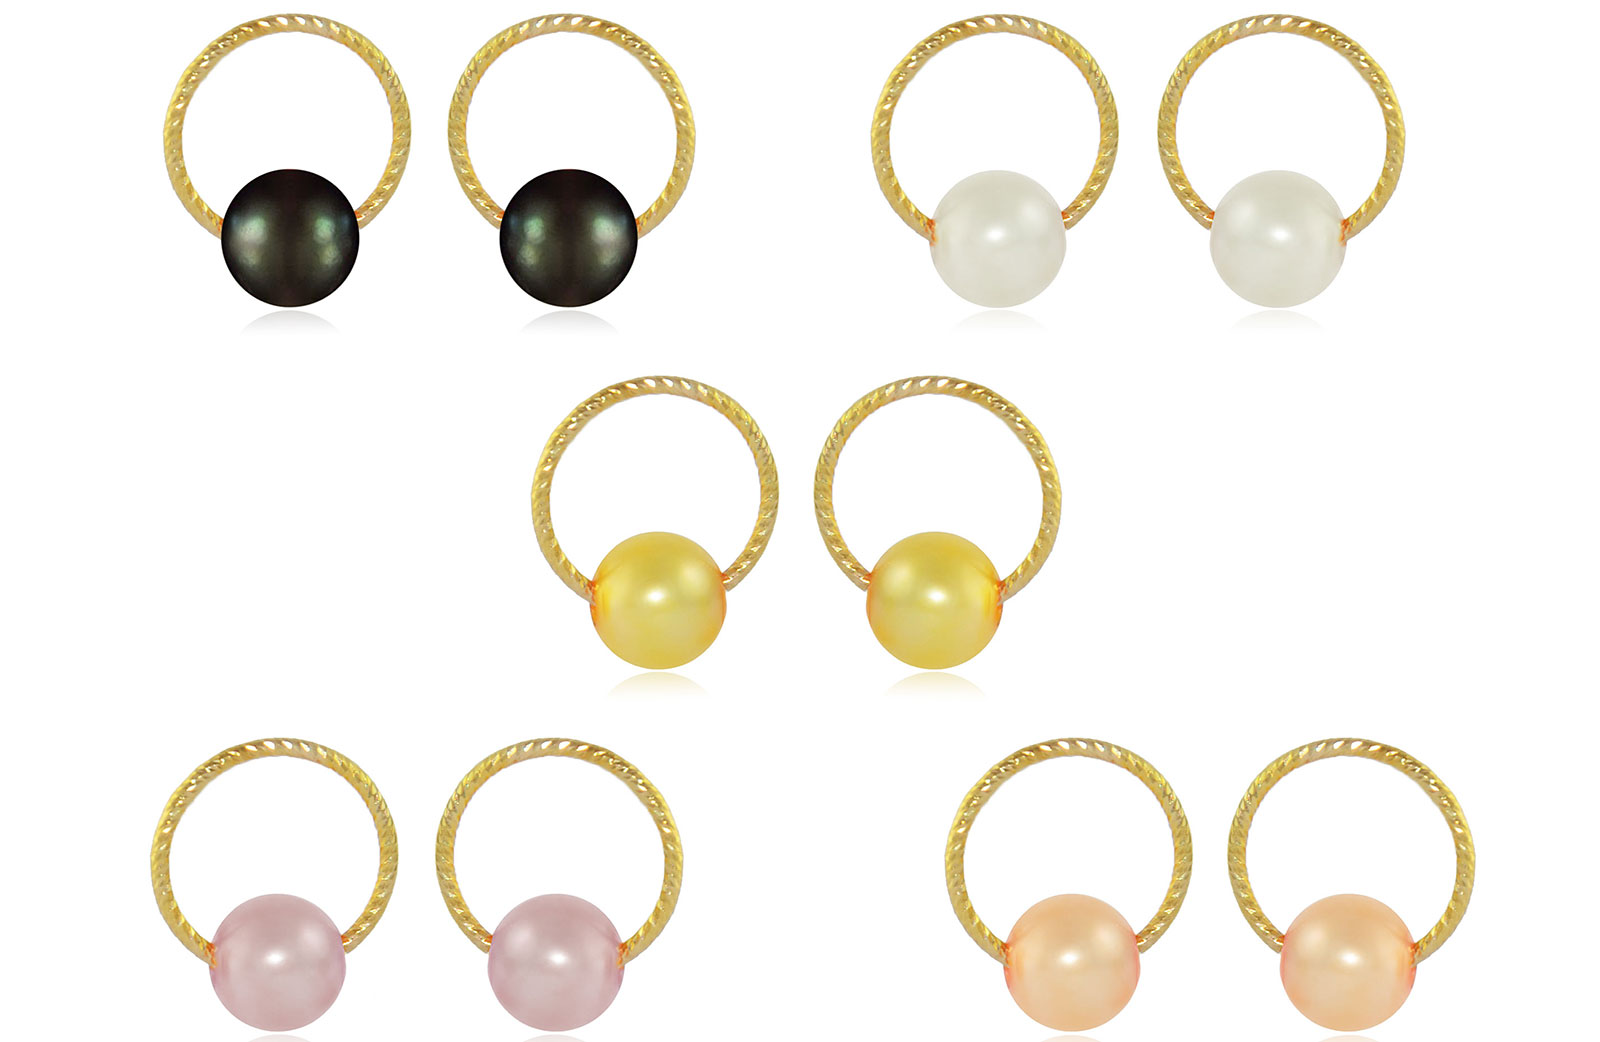 Vera Perla 10k Gold, 5-in-1 Interchangeable 7mm Round Pearls Earrings